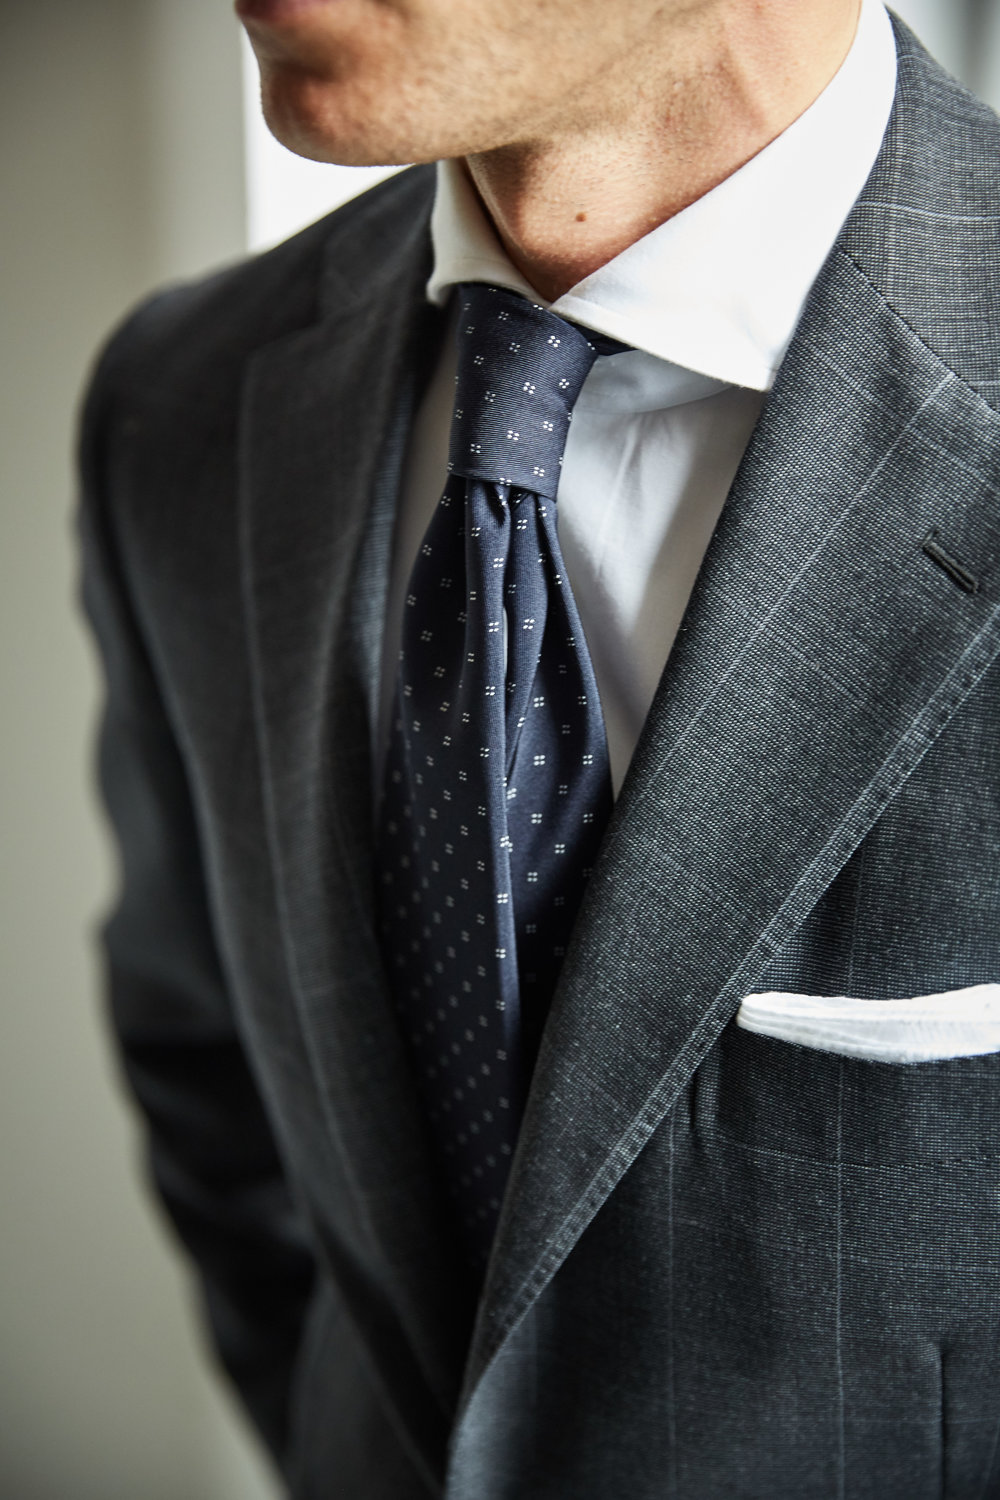 161003_RJ_Nick_DarkGreySuitJacketDetail__I2A5129.jpg